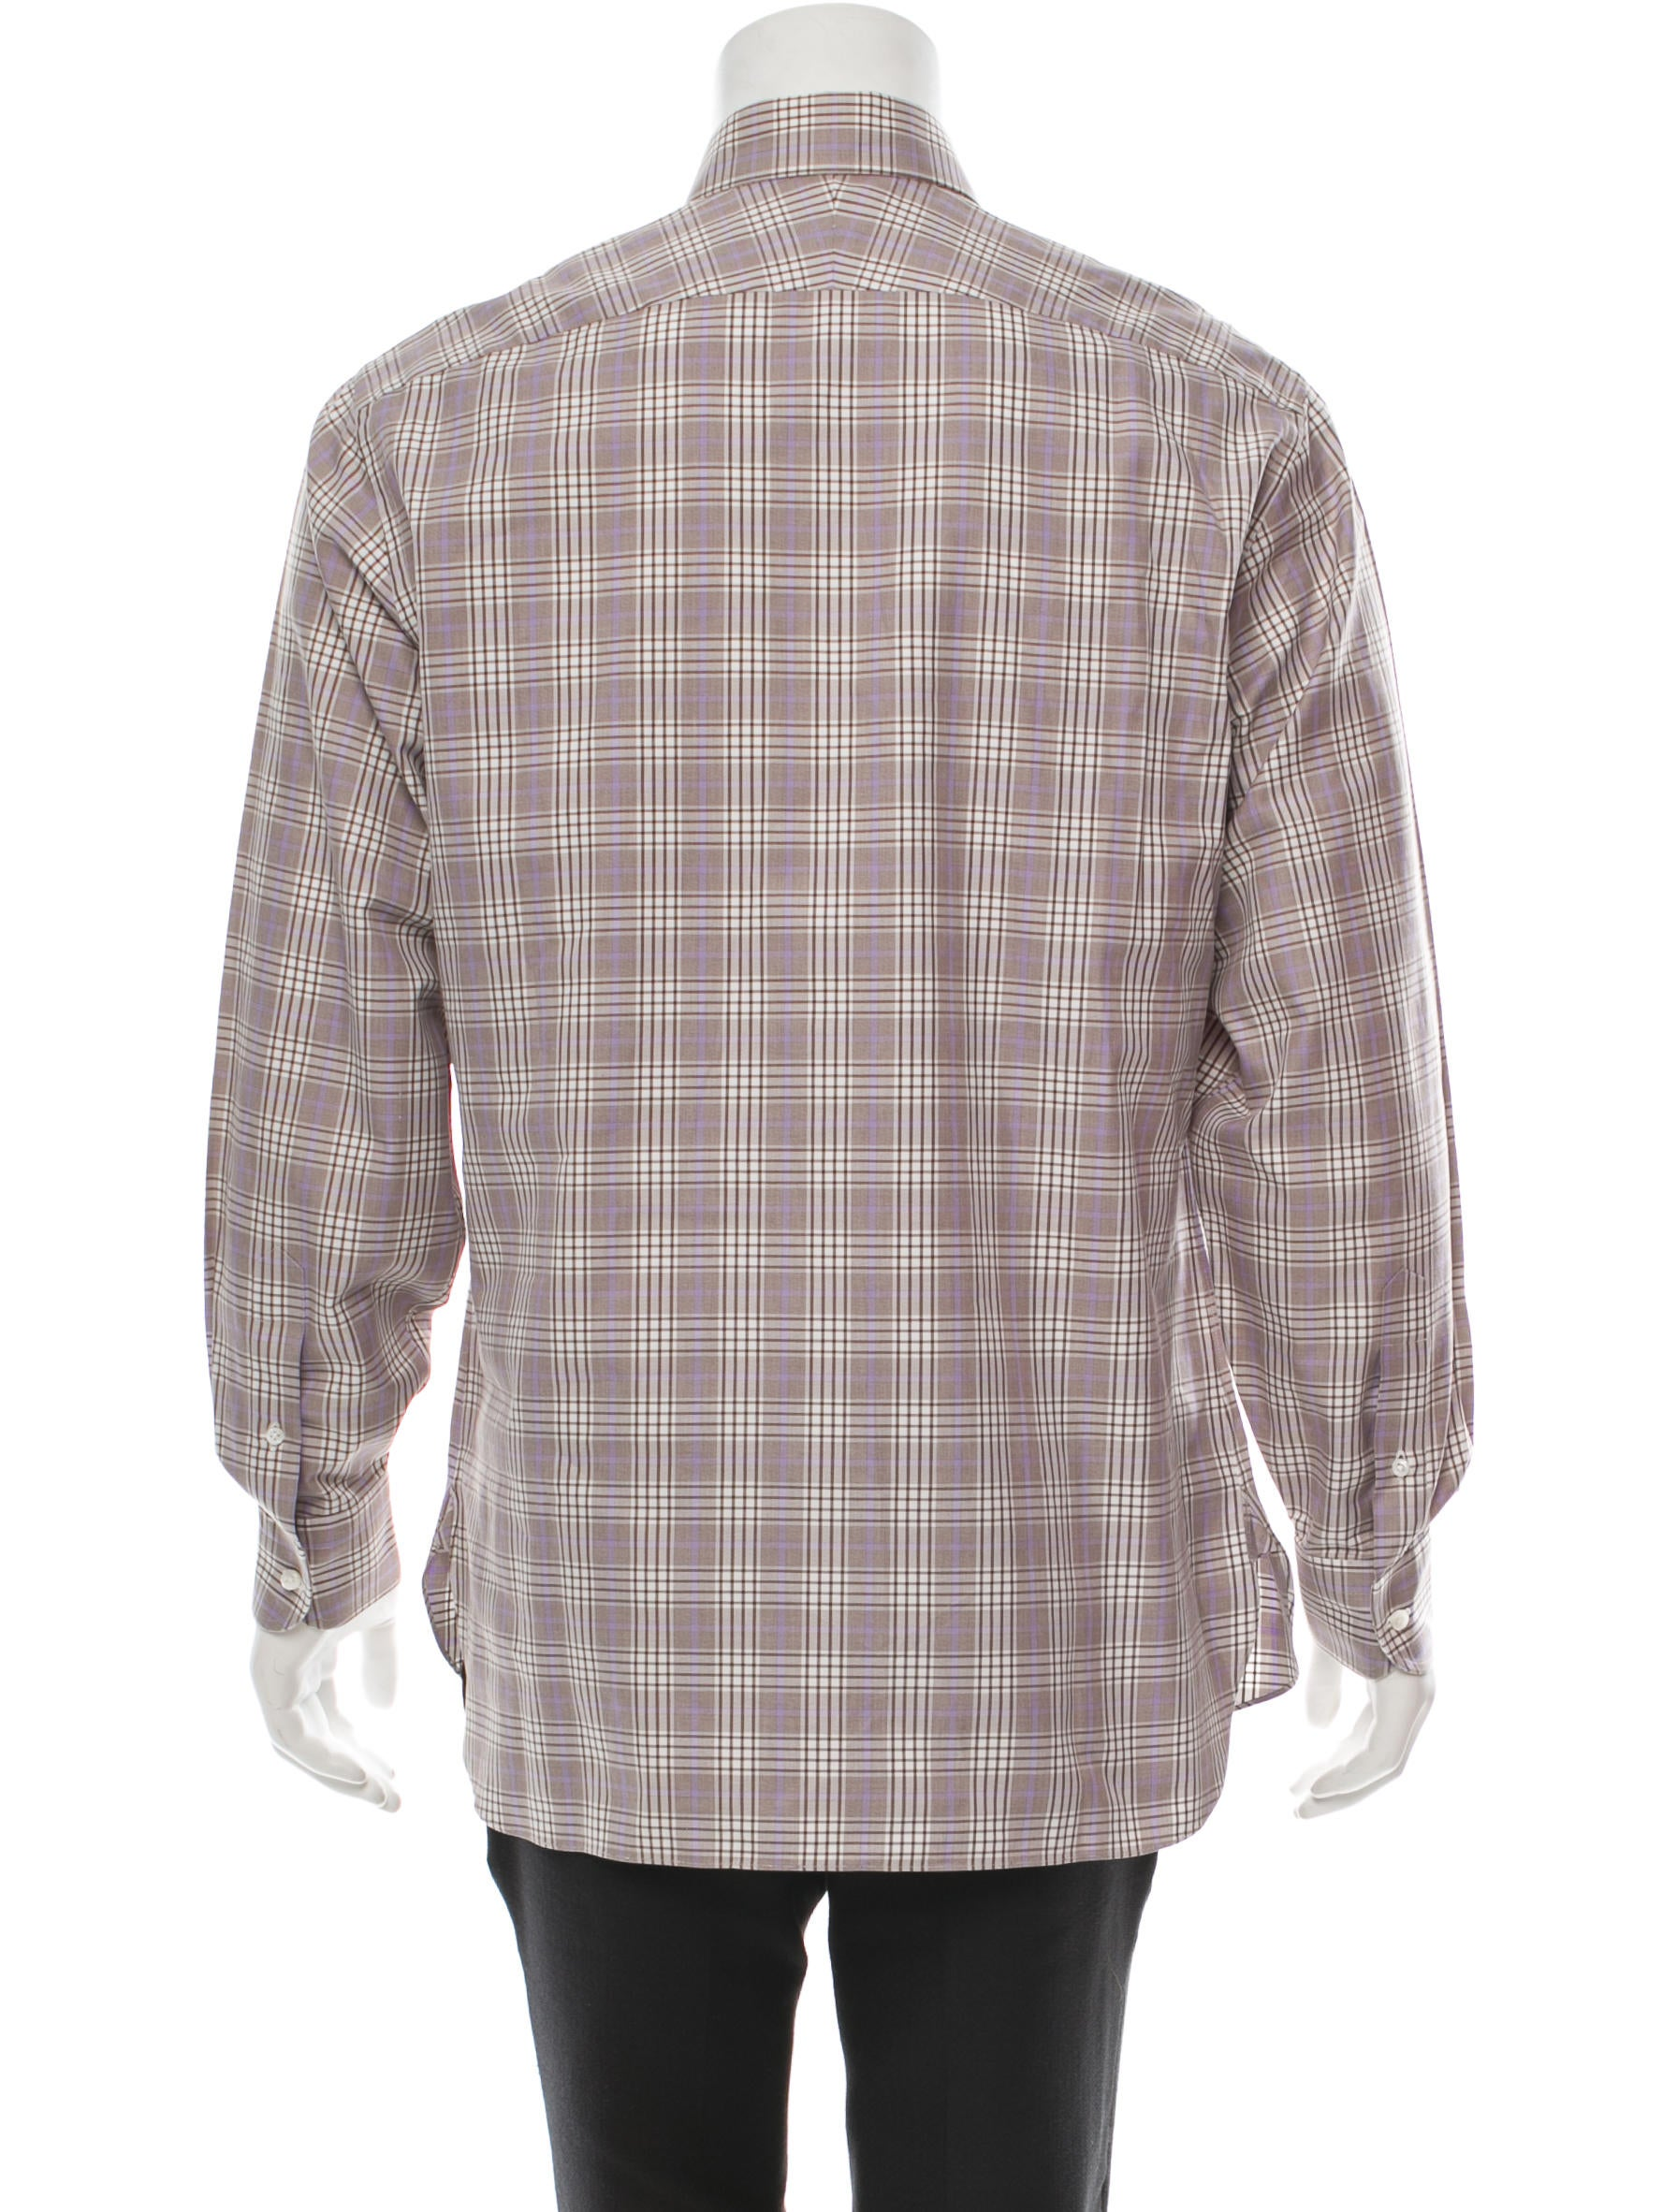 Lorenzini Long Sleeve Plaid Shirt Clothing Lornz20002